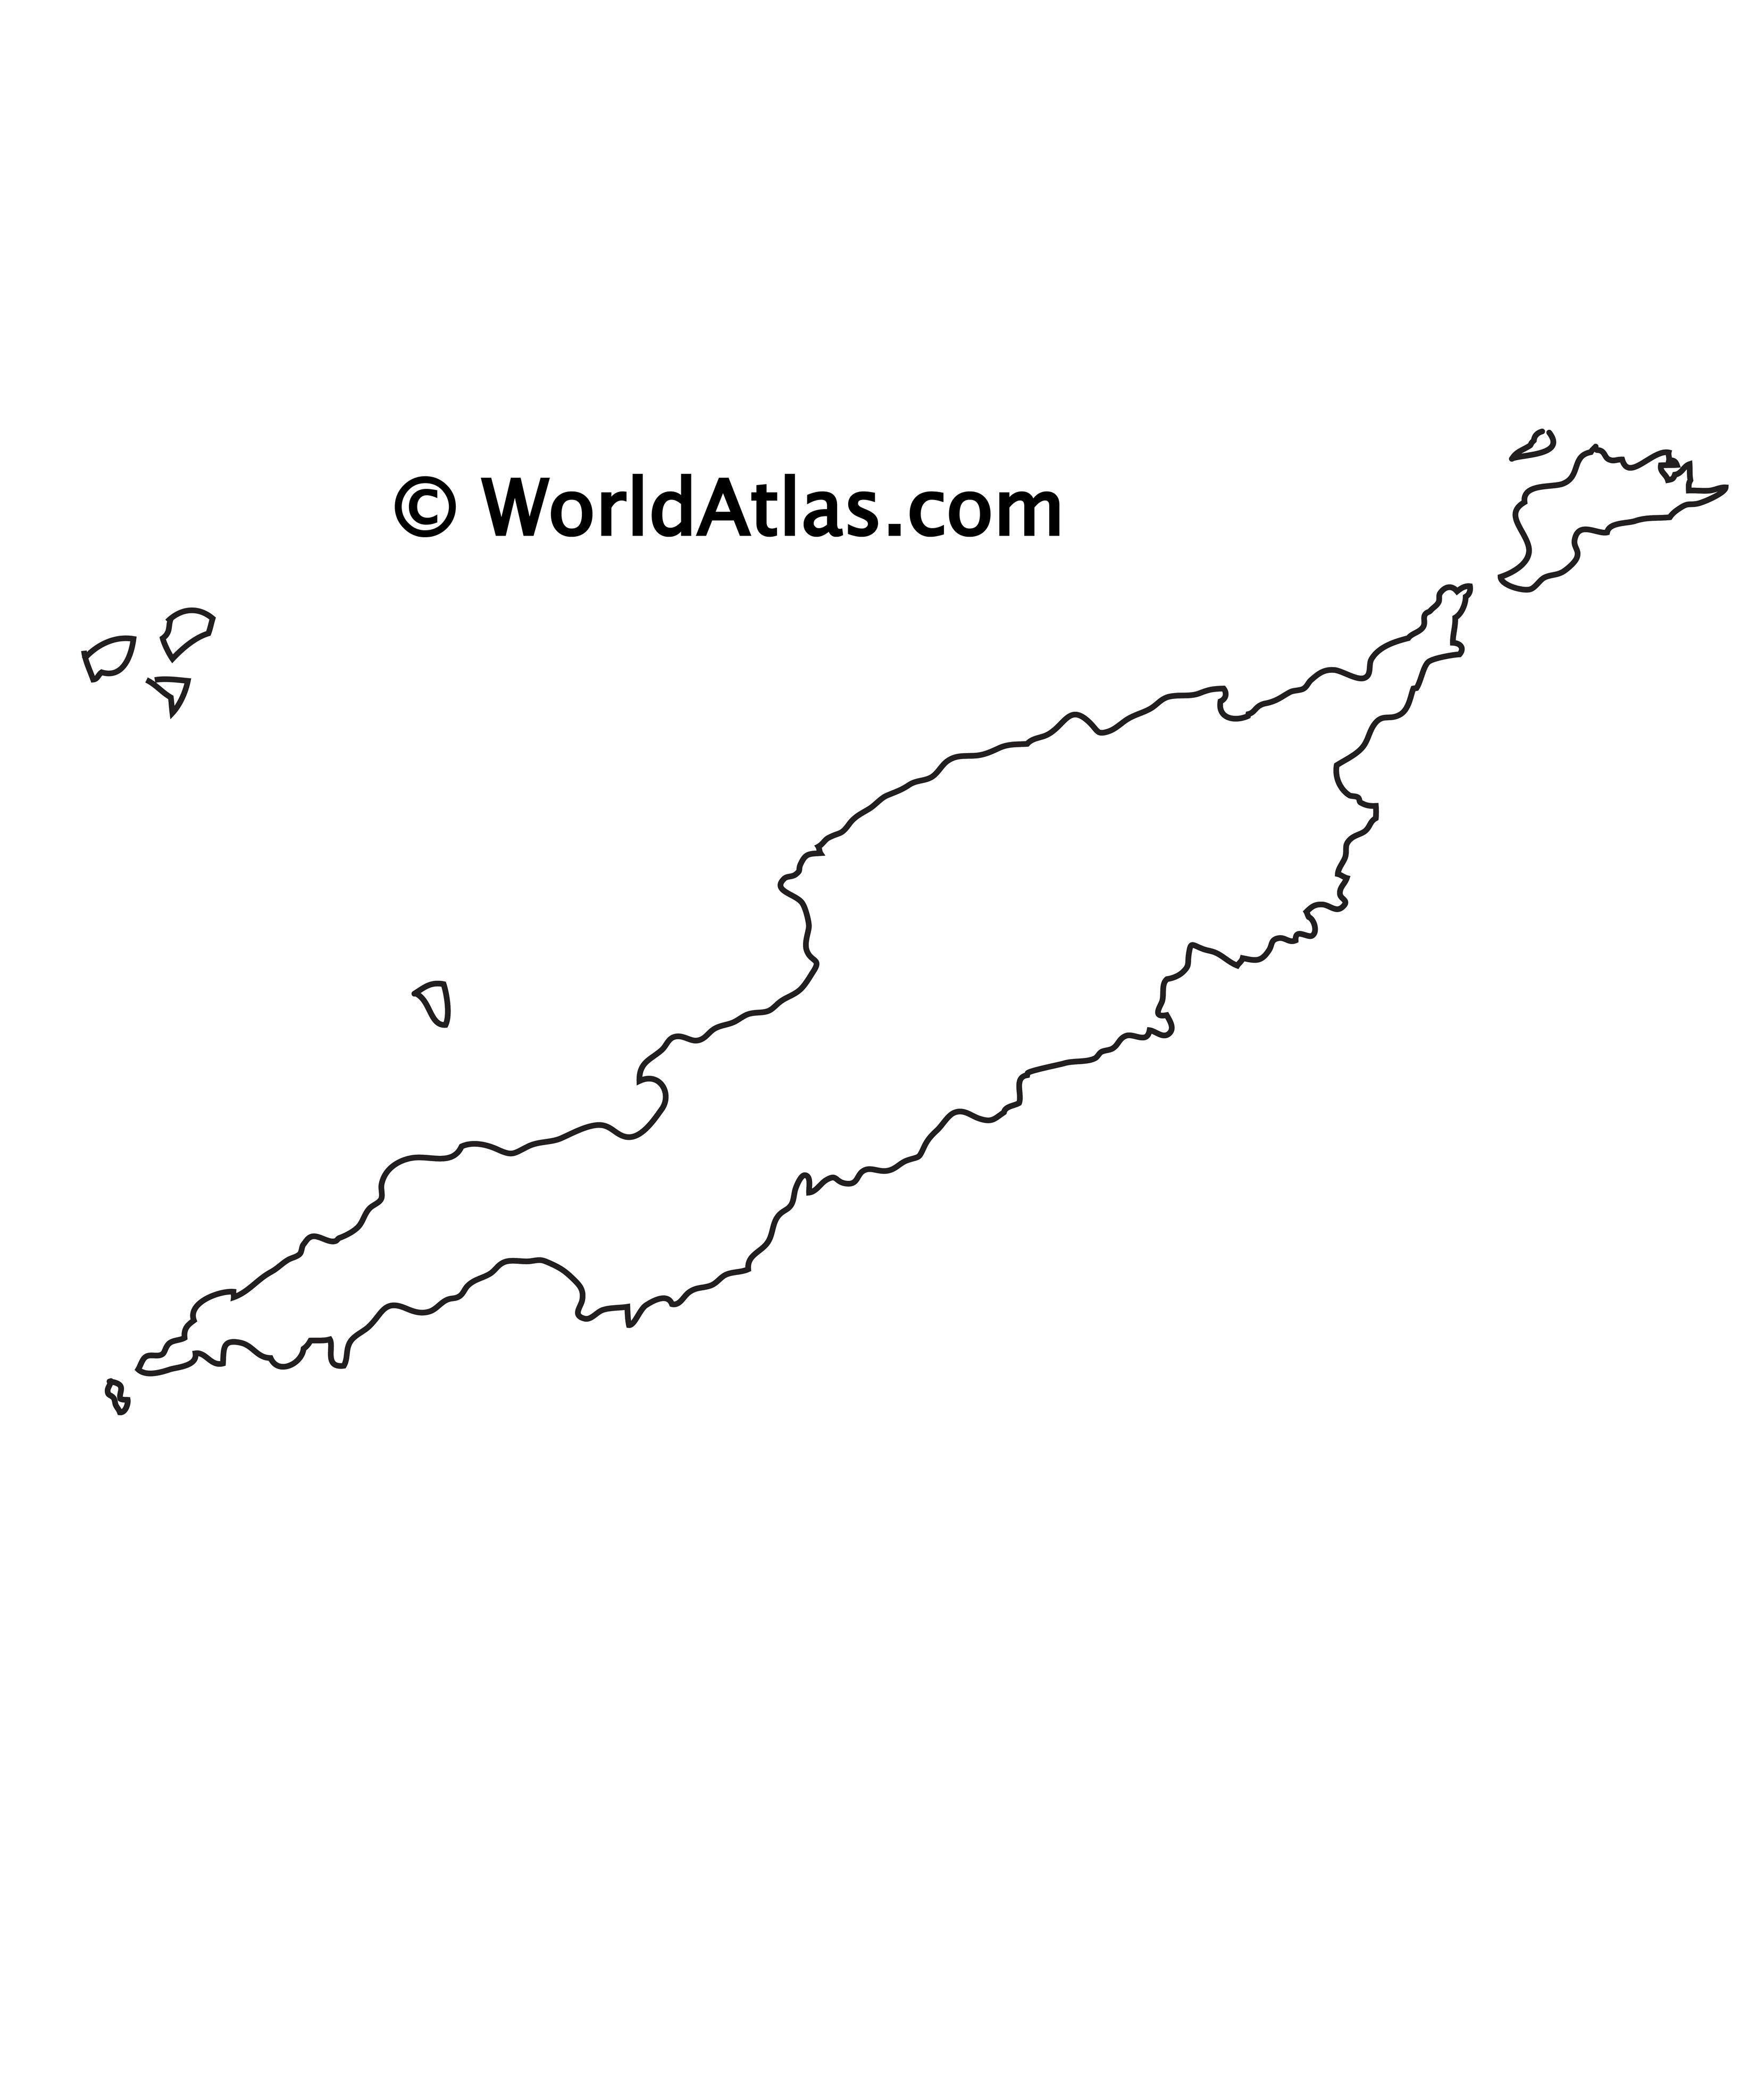 Blank Outline Map of Anguilla